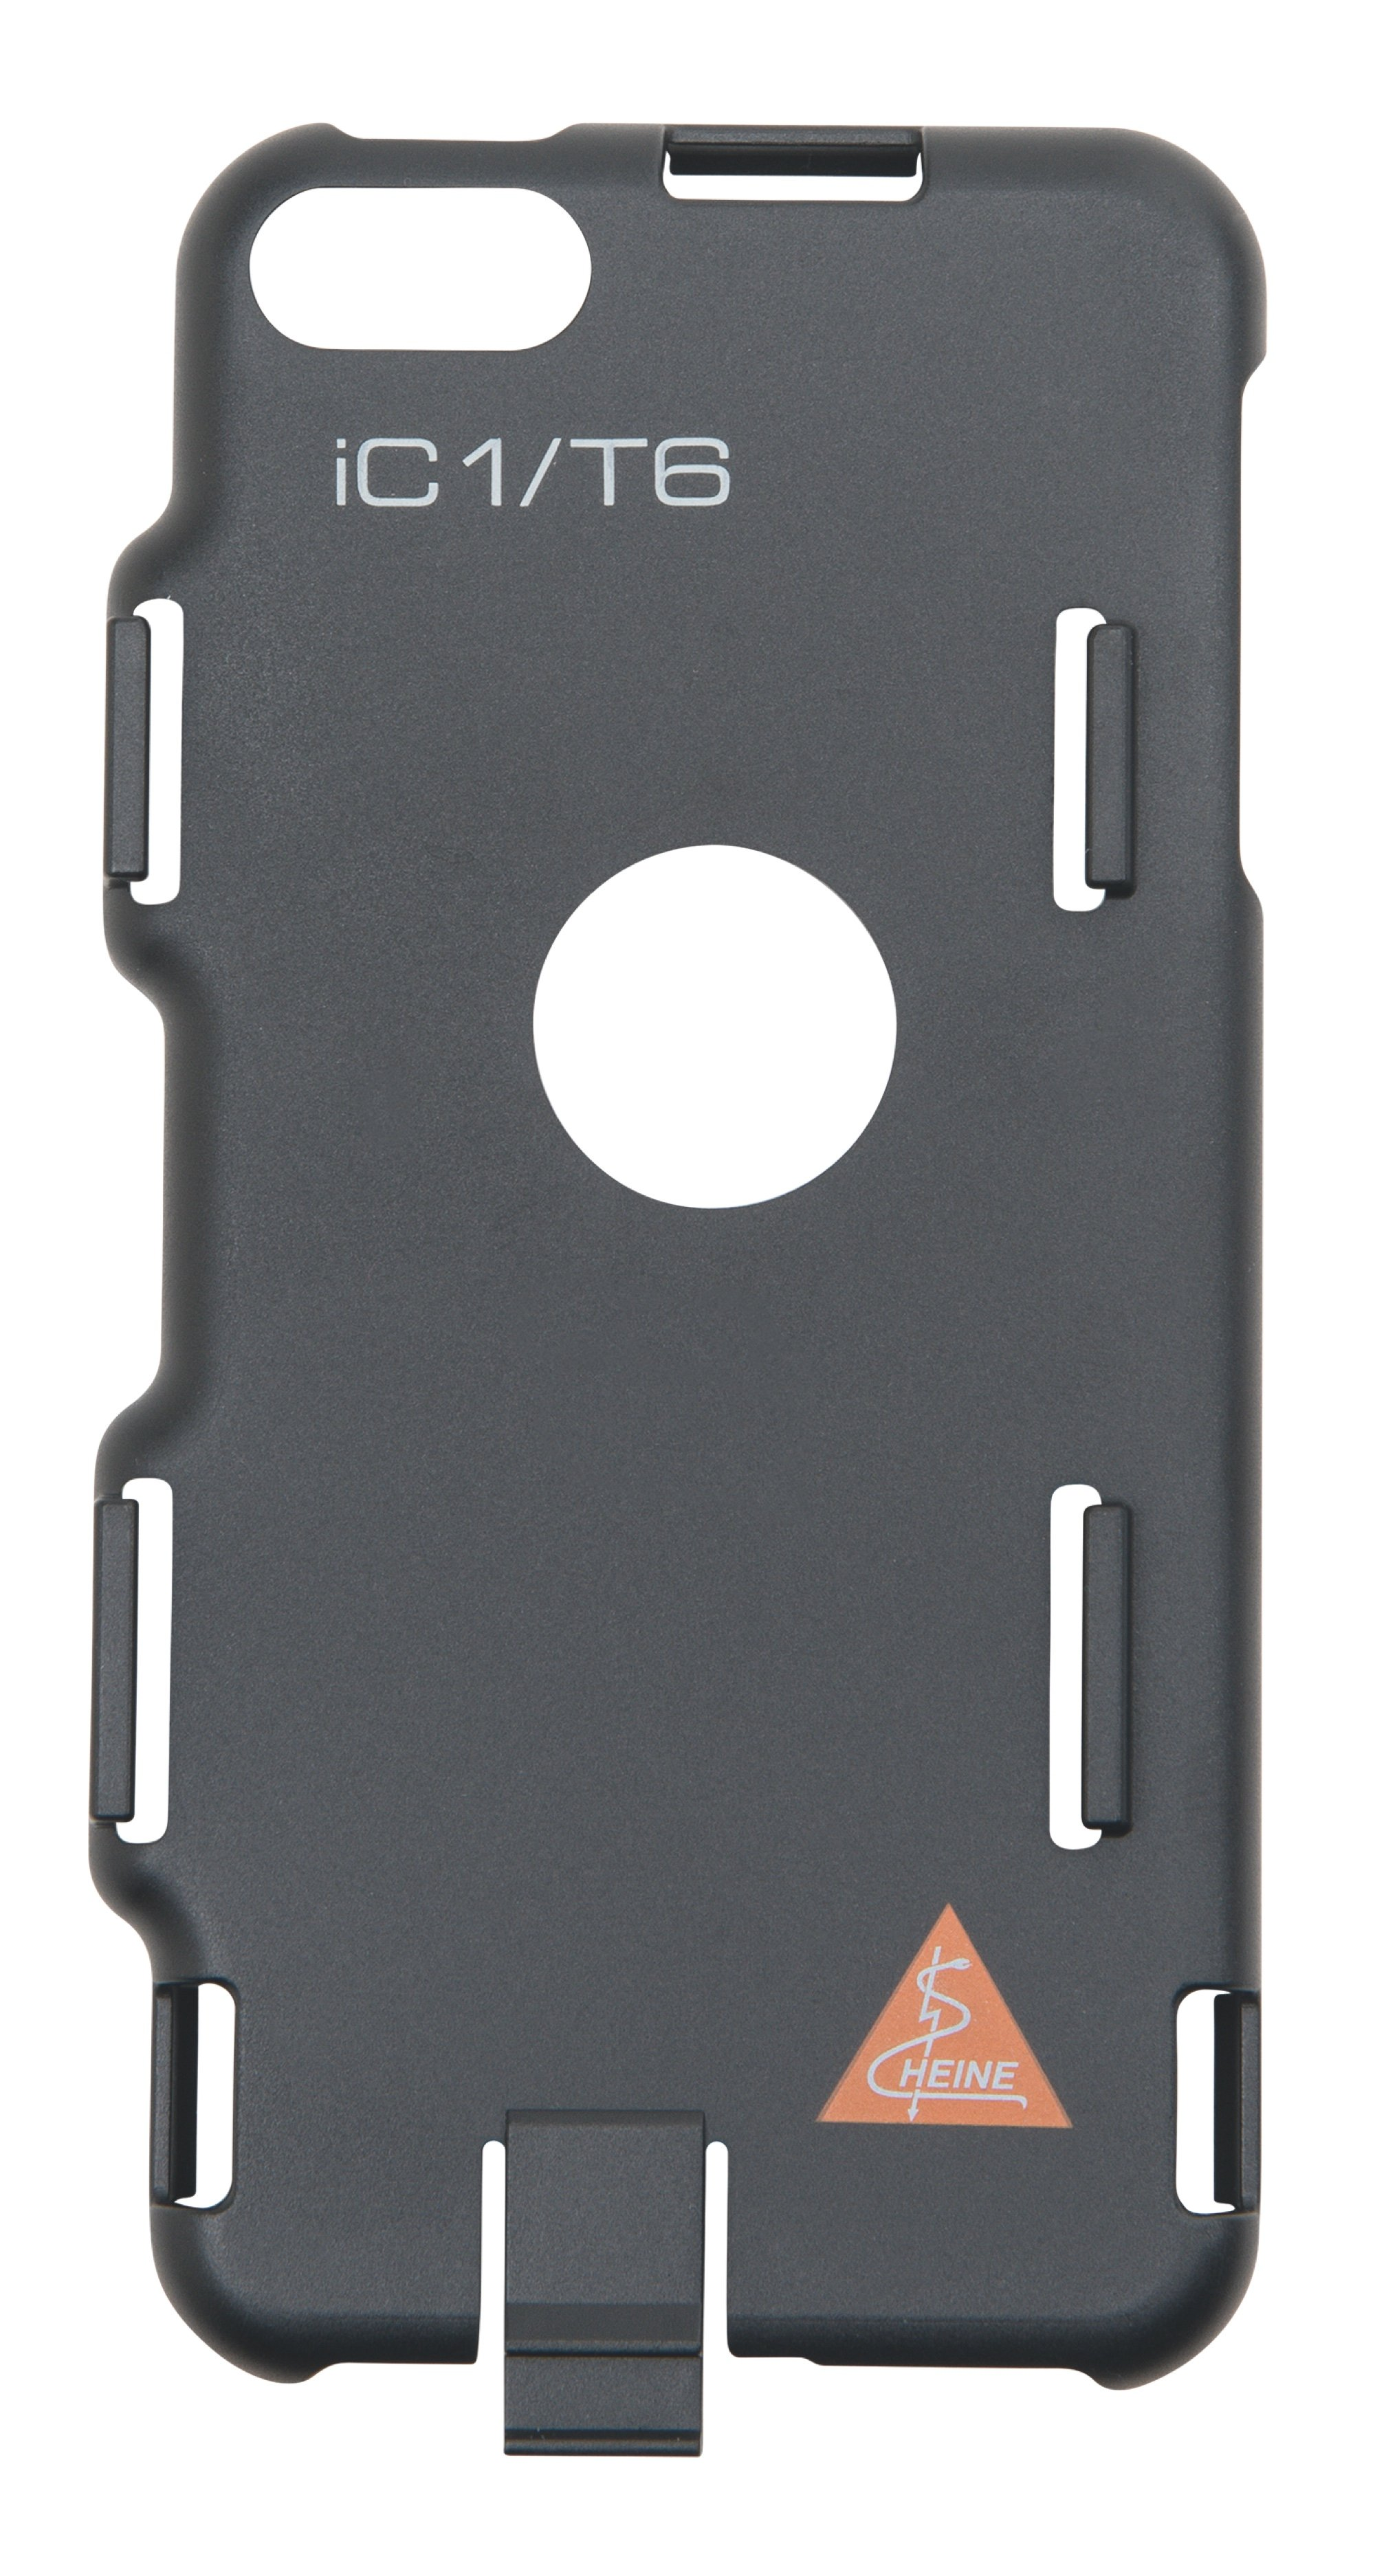 HEINE iC 1 Mounting Case for iPod touch 6th Generation